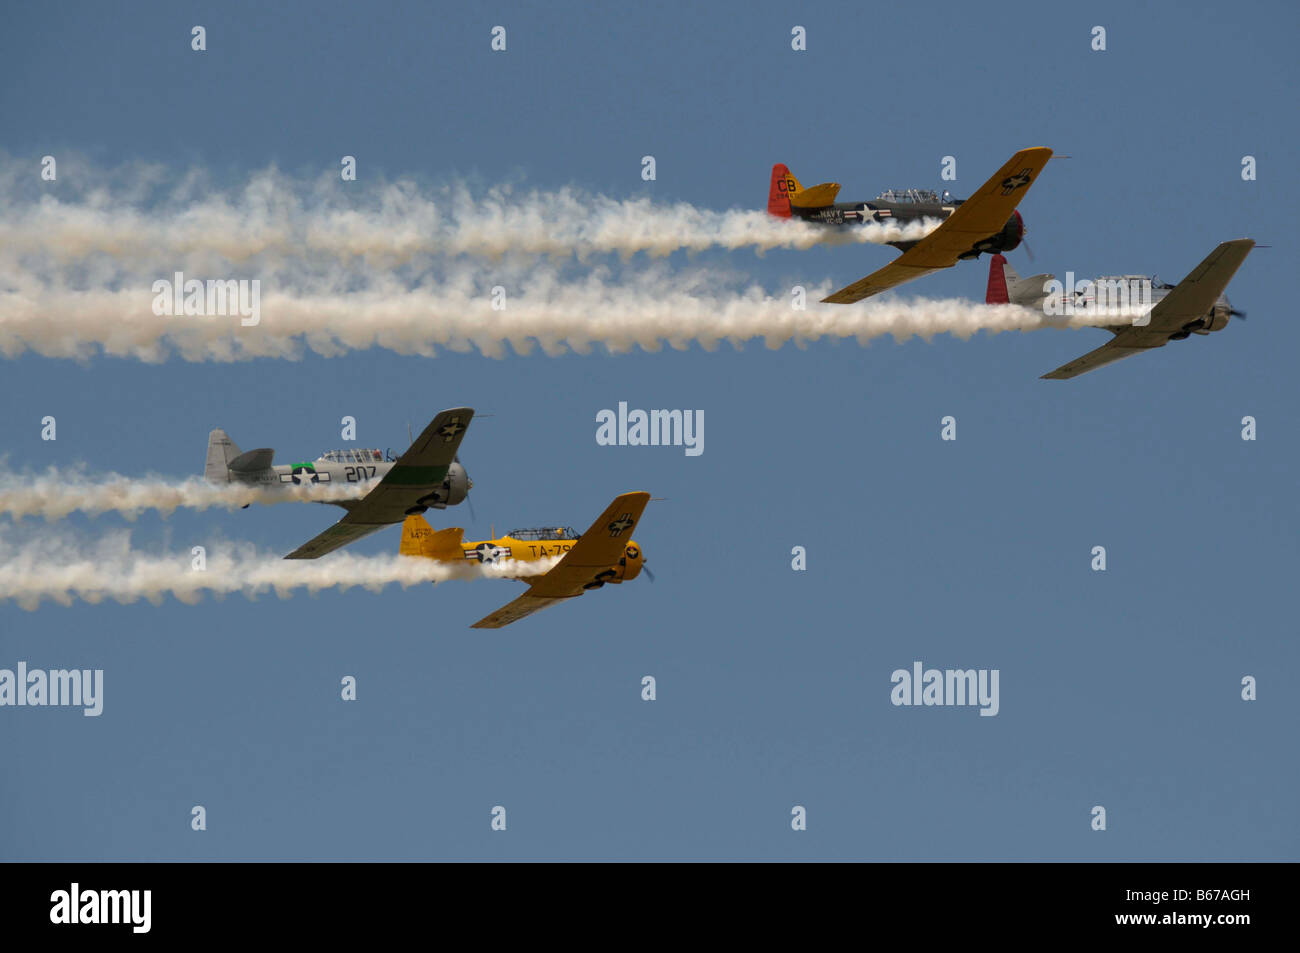 The North American T-6 Texan wwII airplanes in an airshow at the Willow Run airport in Bellville, Michigan - Stock Image